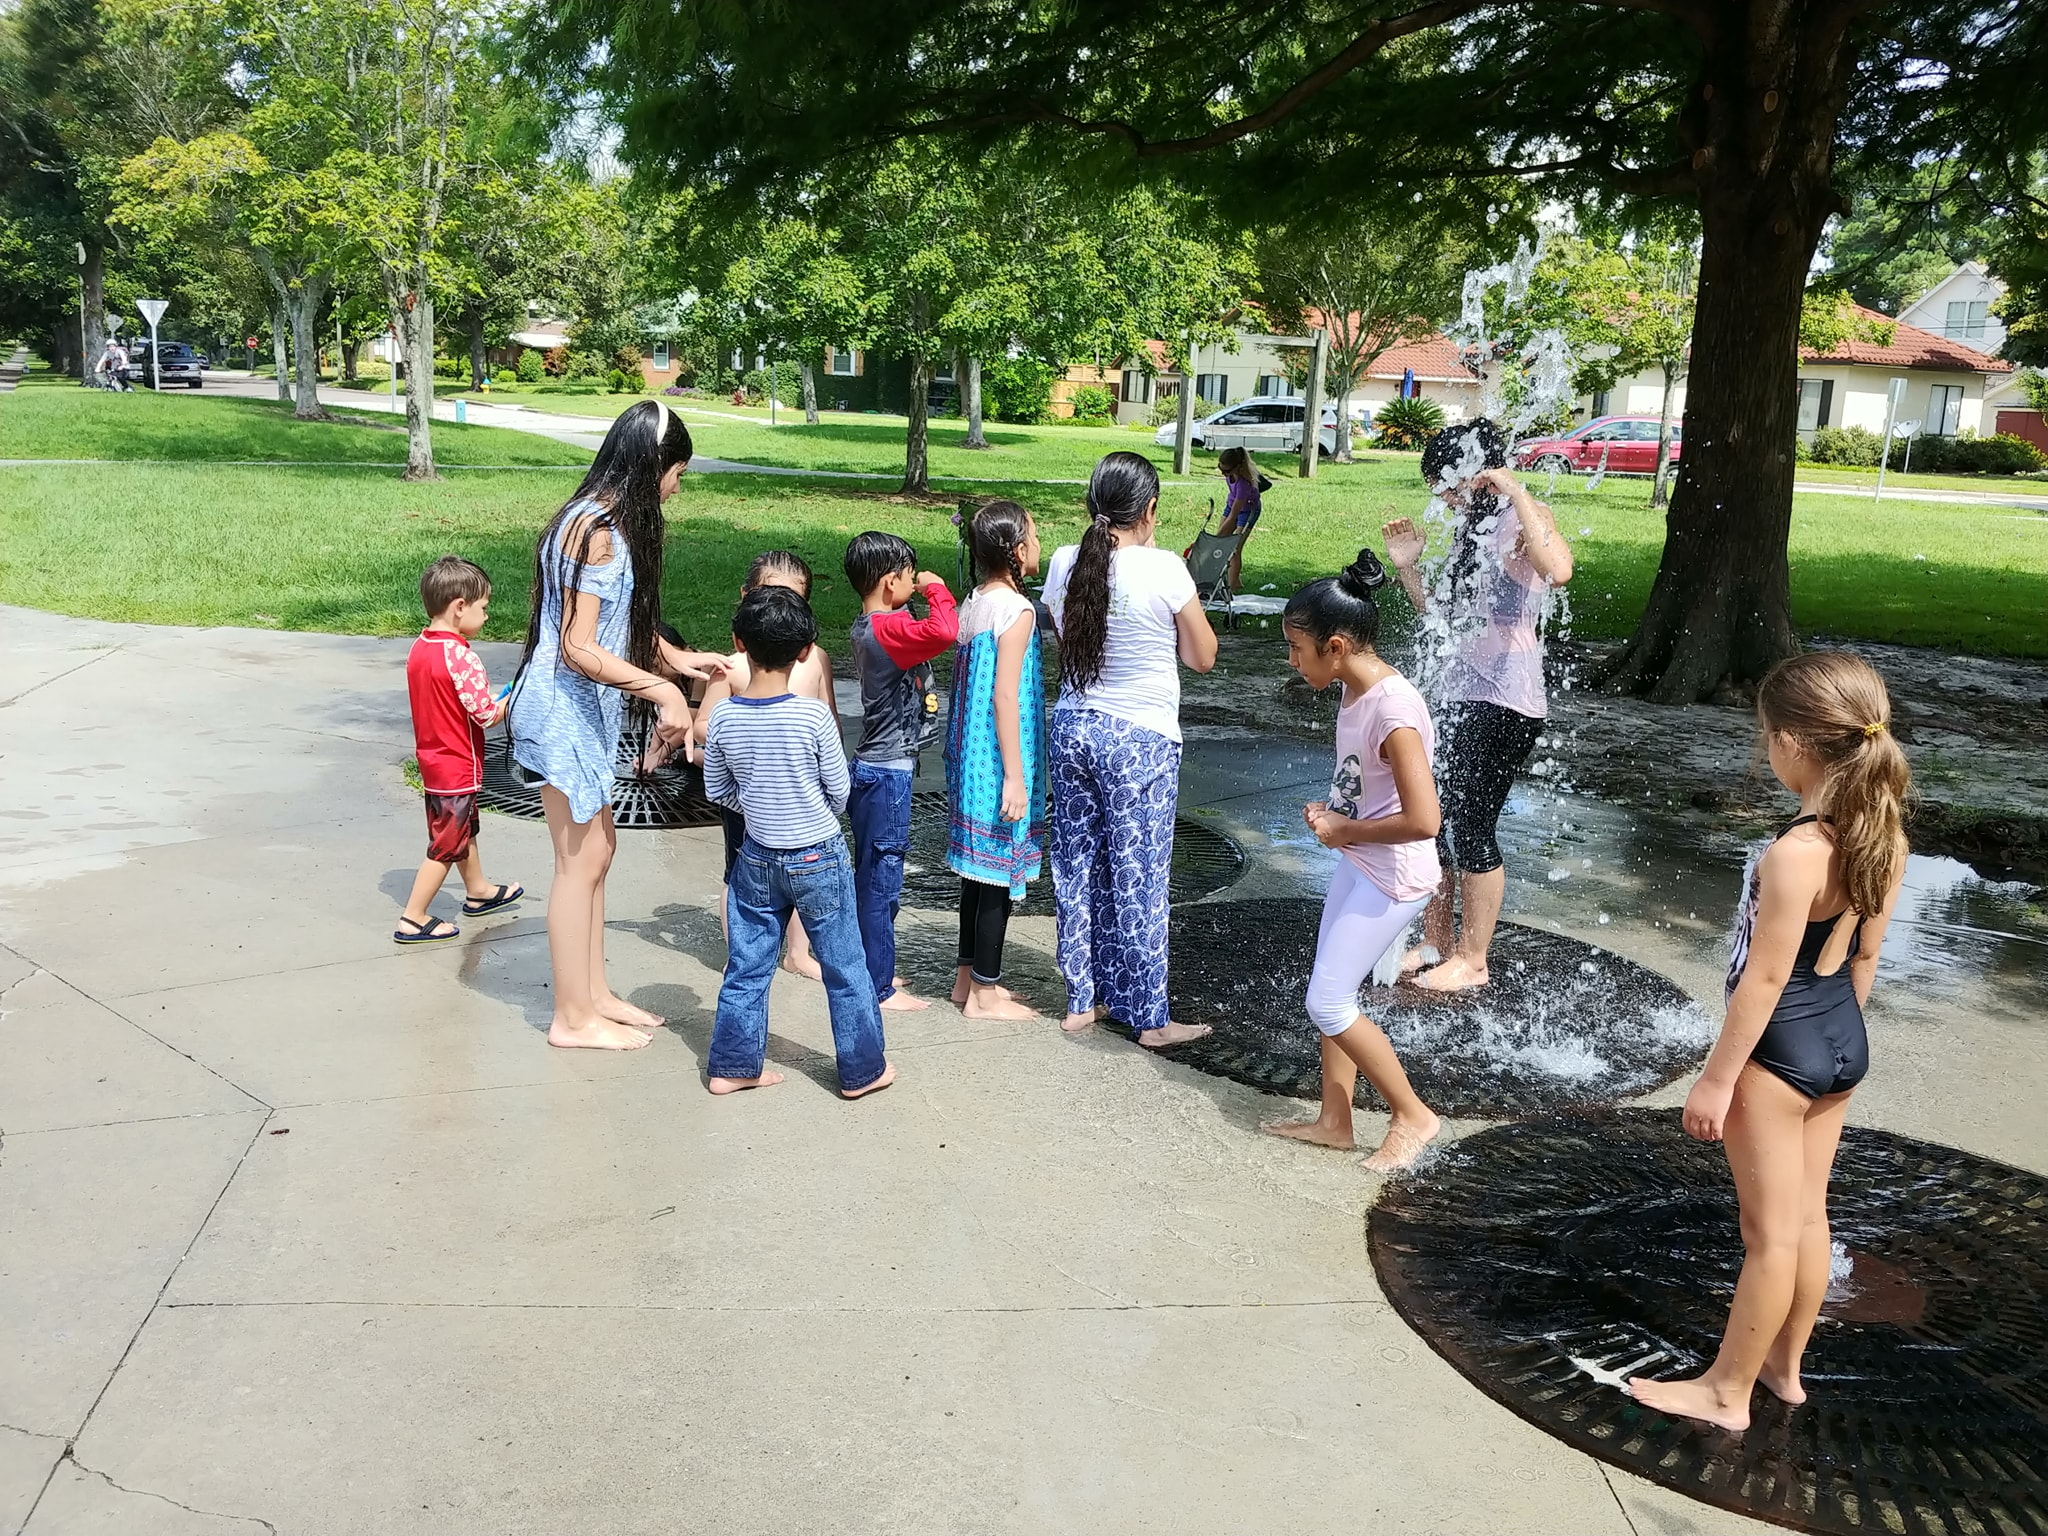 Last year's campers cooling off on a hot day.